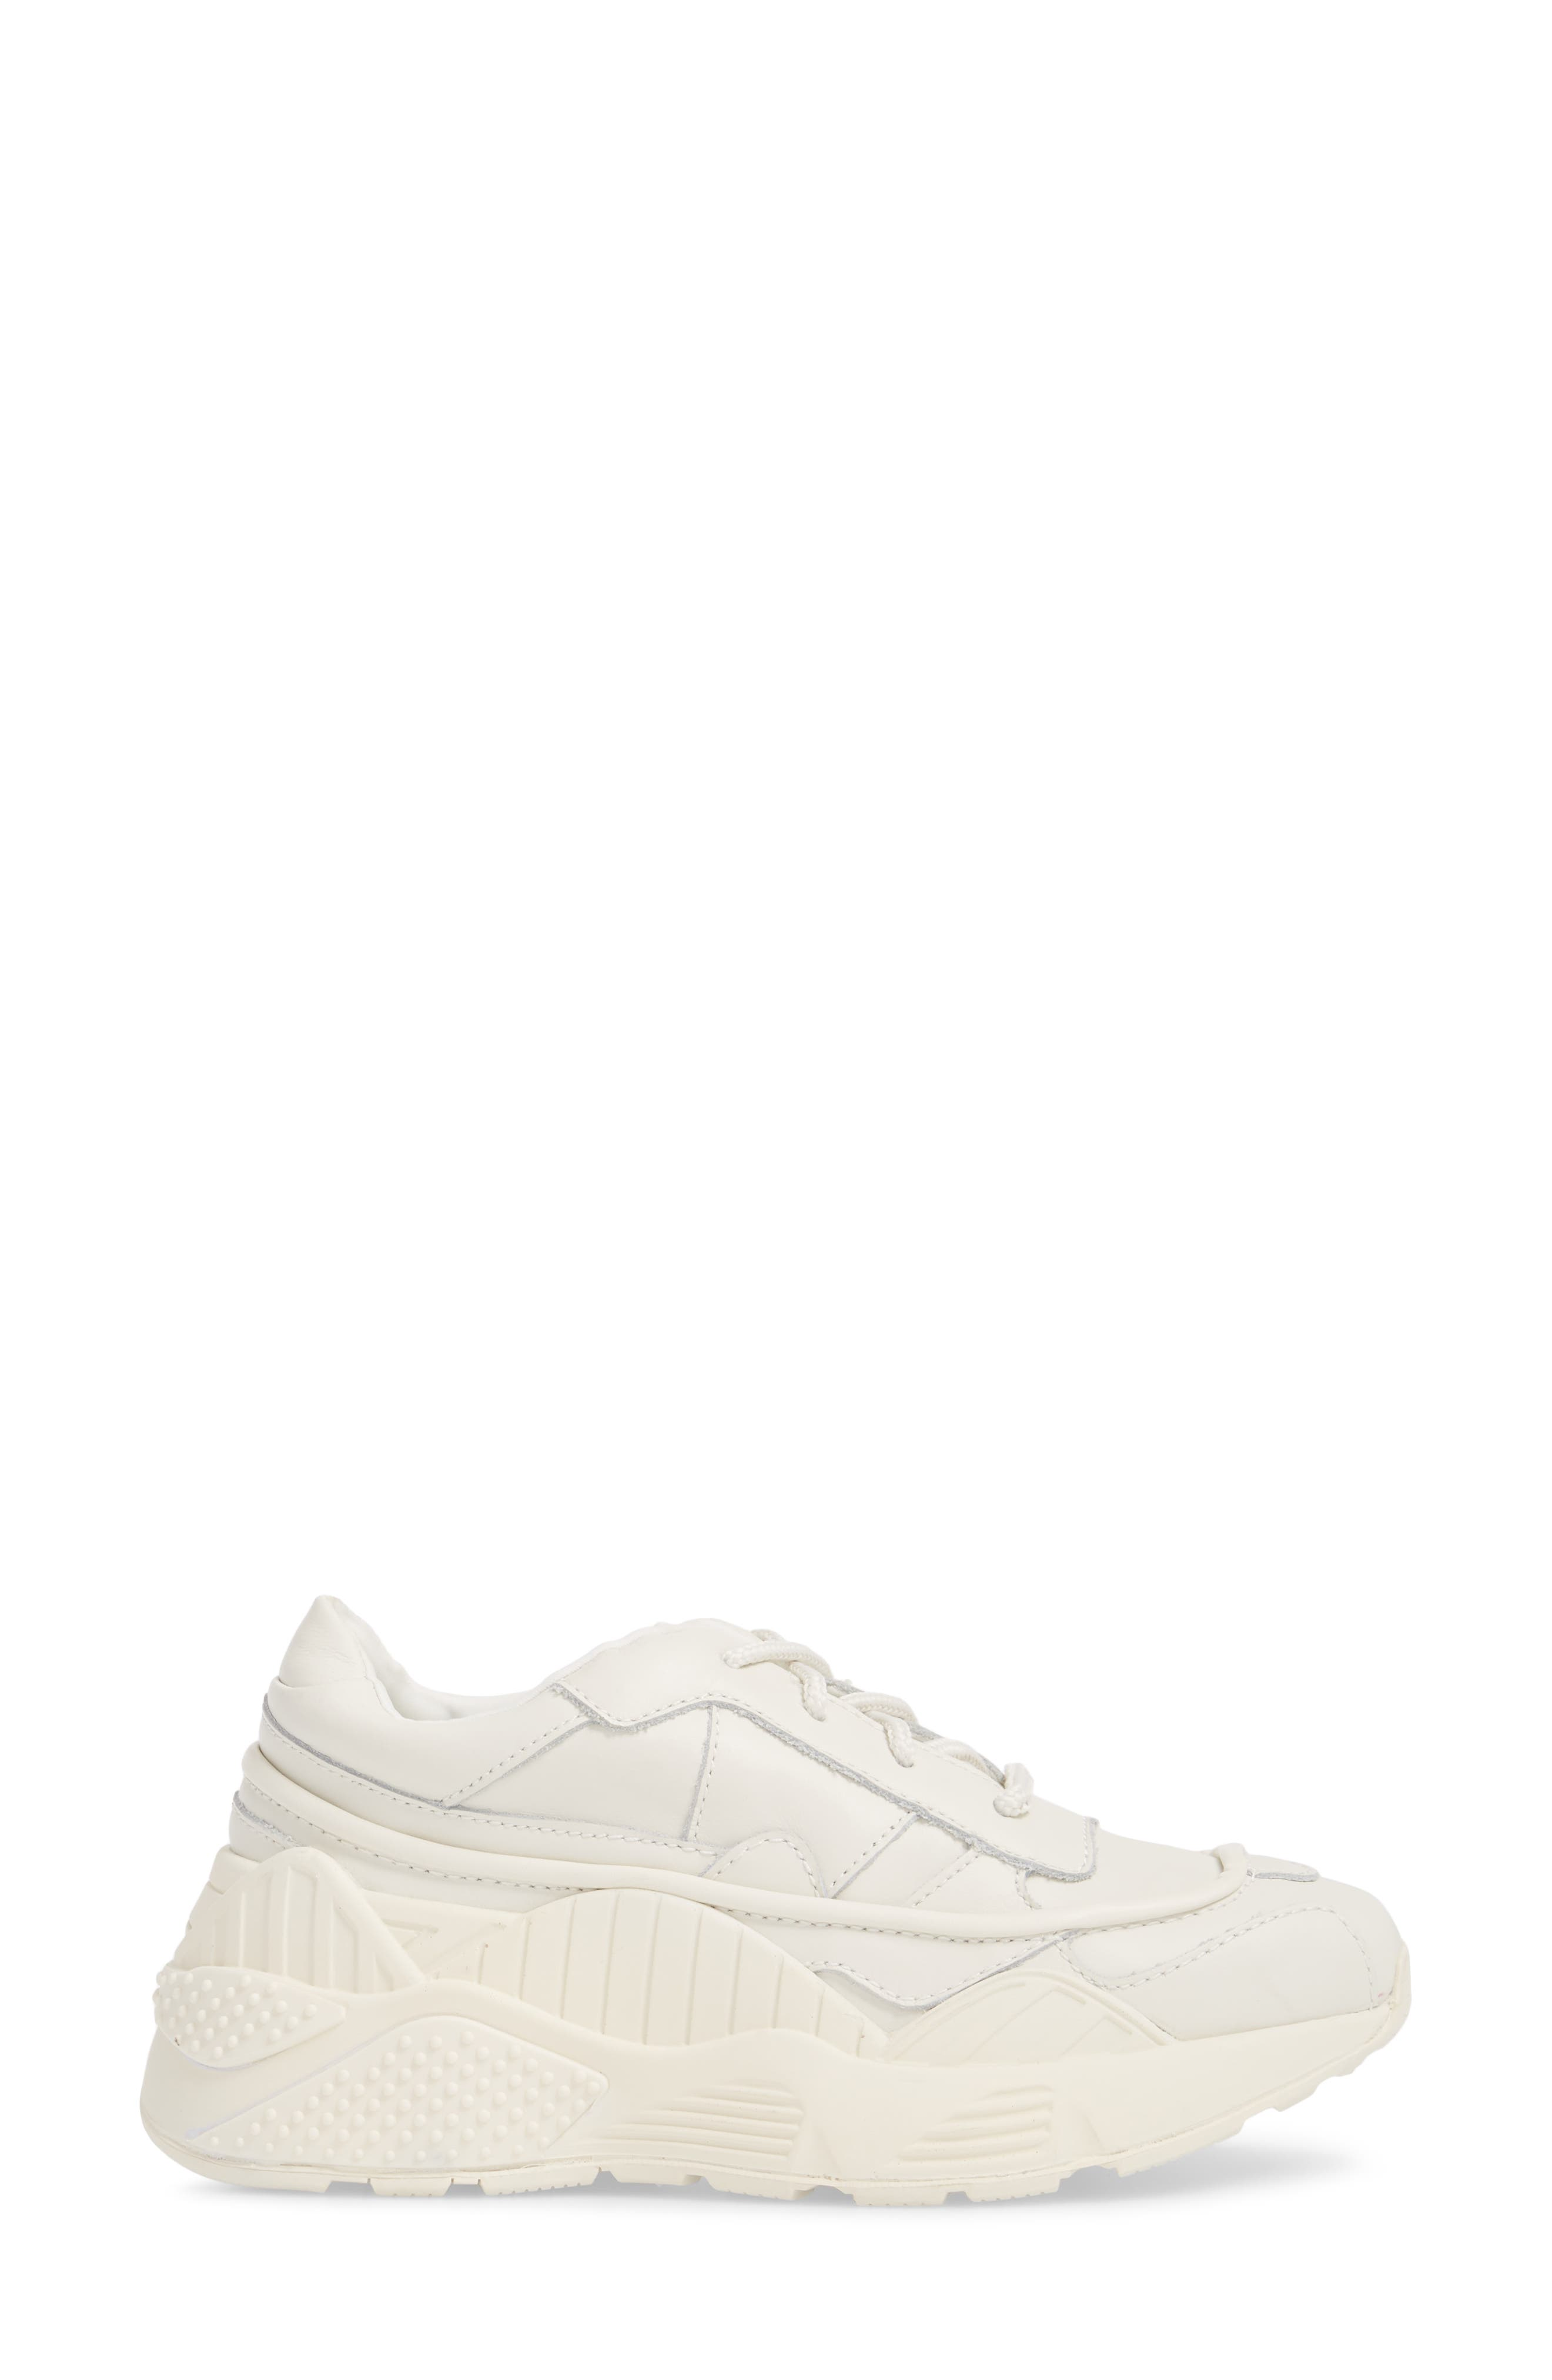 HMDI Platform Sneaker,                             Alternate thumbnail 3, color,                             WHITE LEATHER